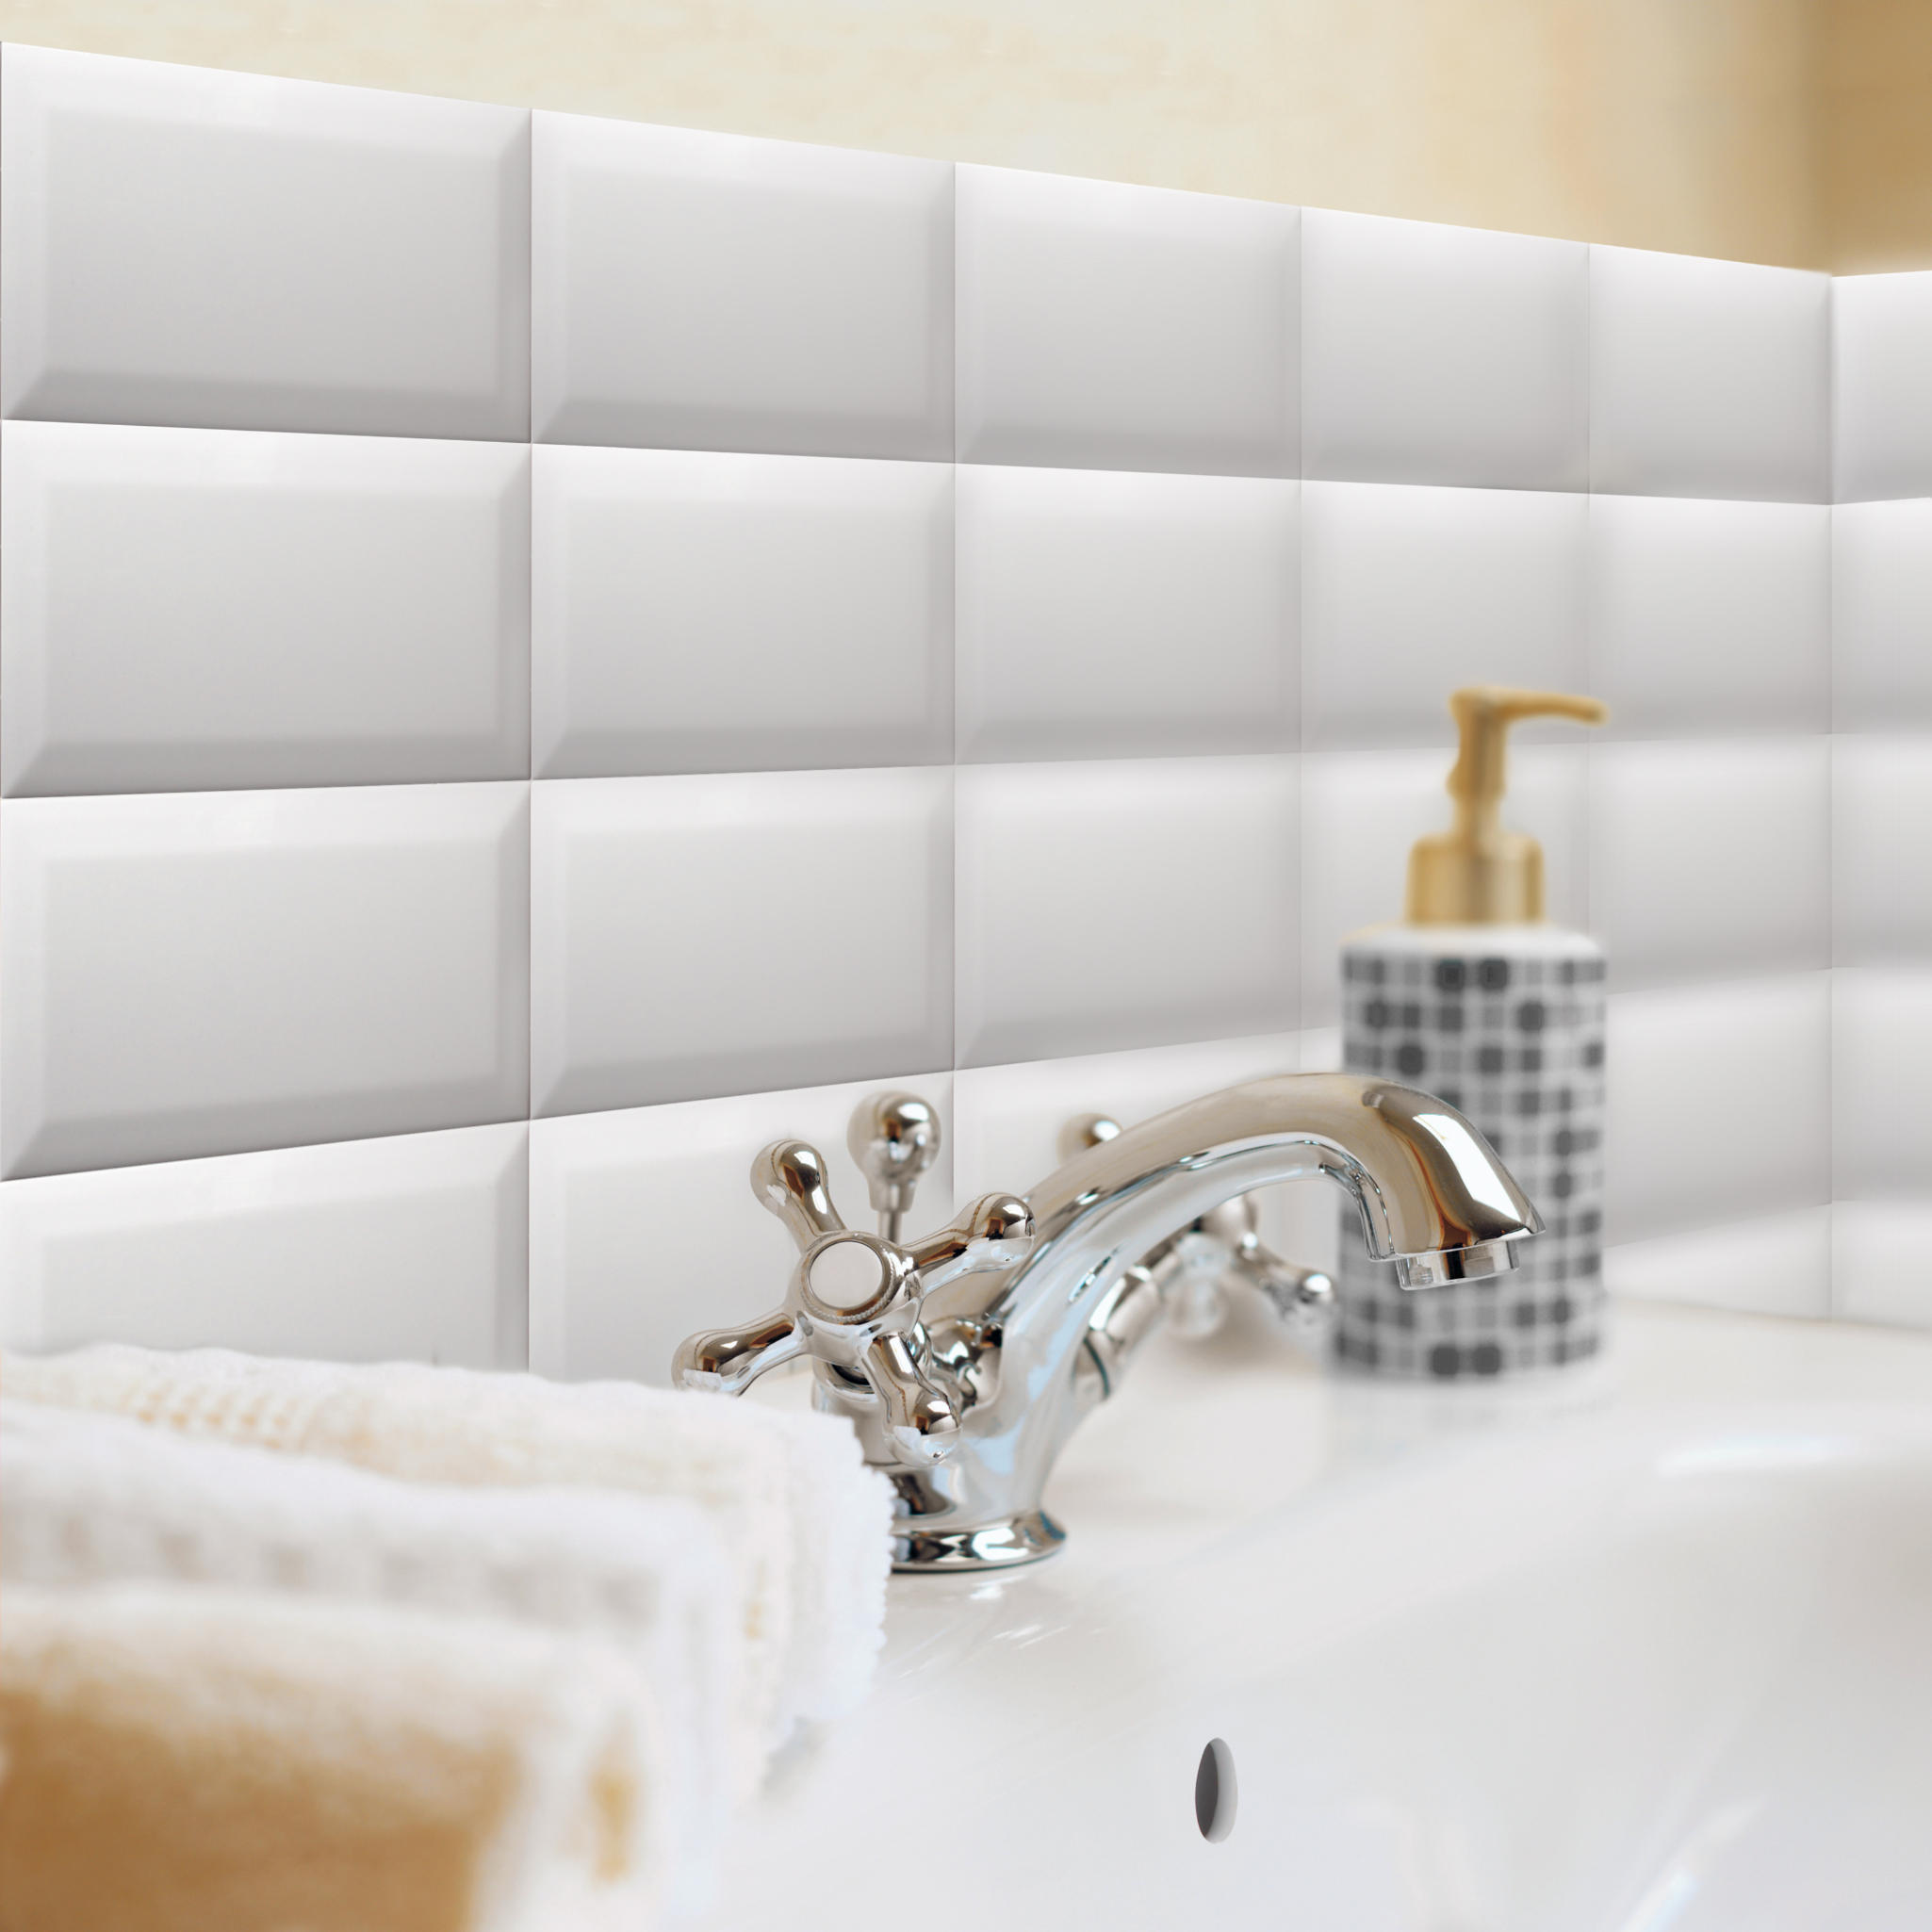 San Diego Marble Tile White Bevel Subway Tile.jpg